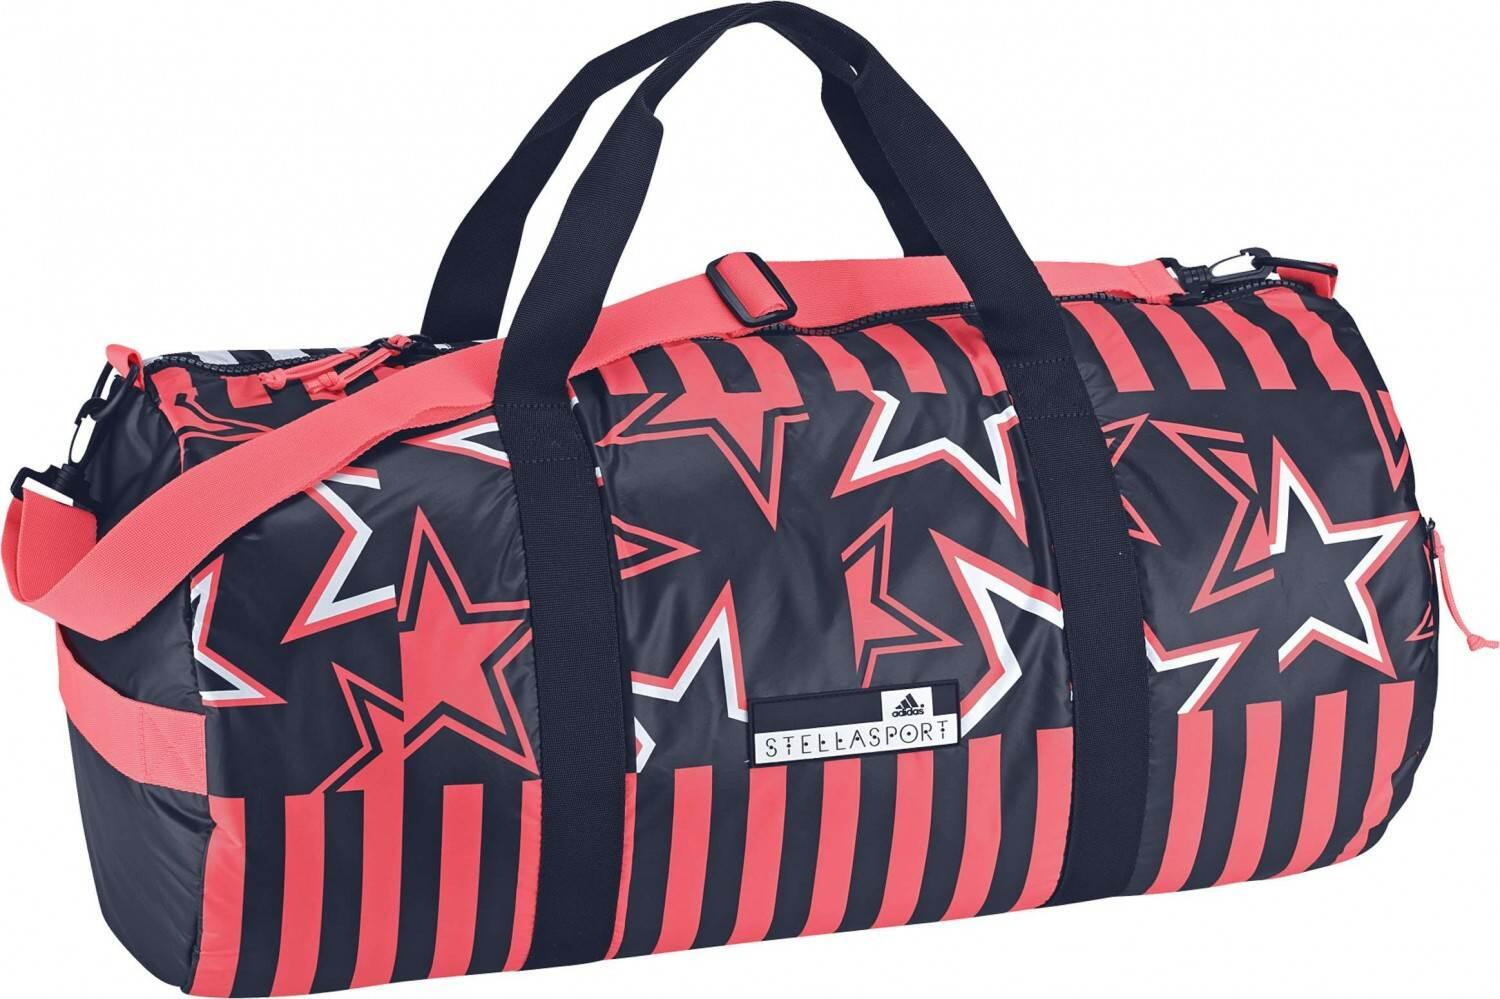 adidas-stella-sport-teambag-printed-sporttasche-farbe-night-indigo-flash-red-s15-